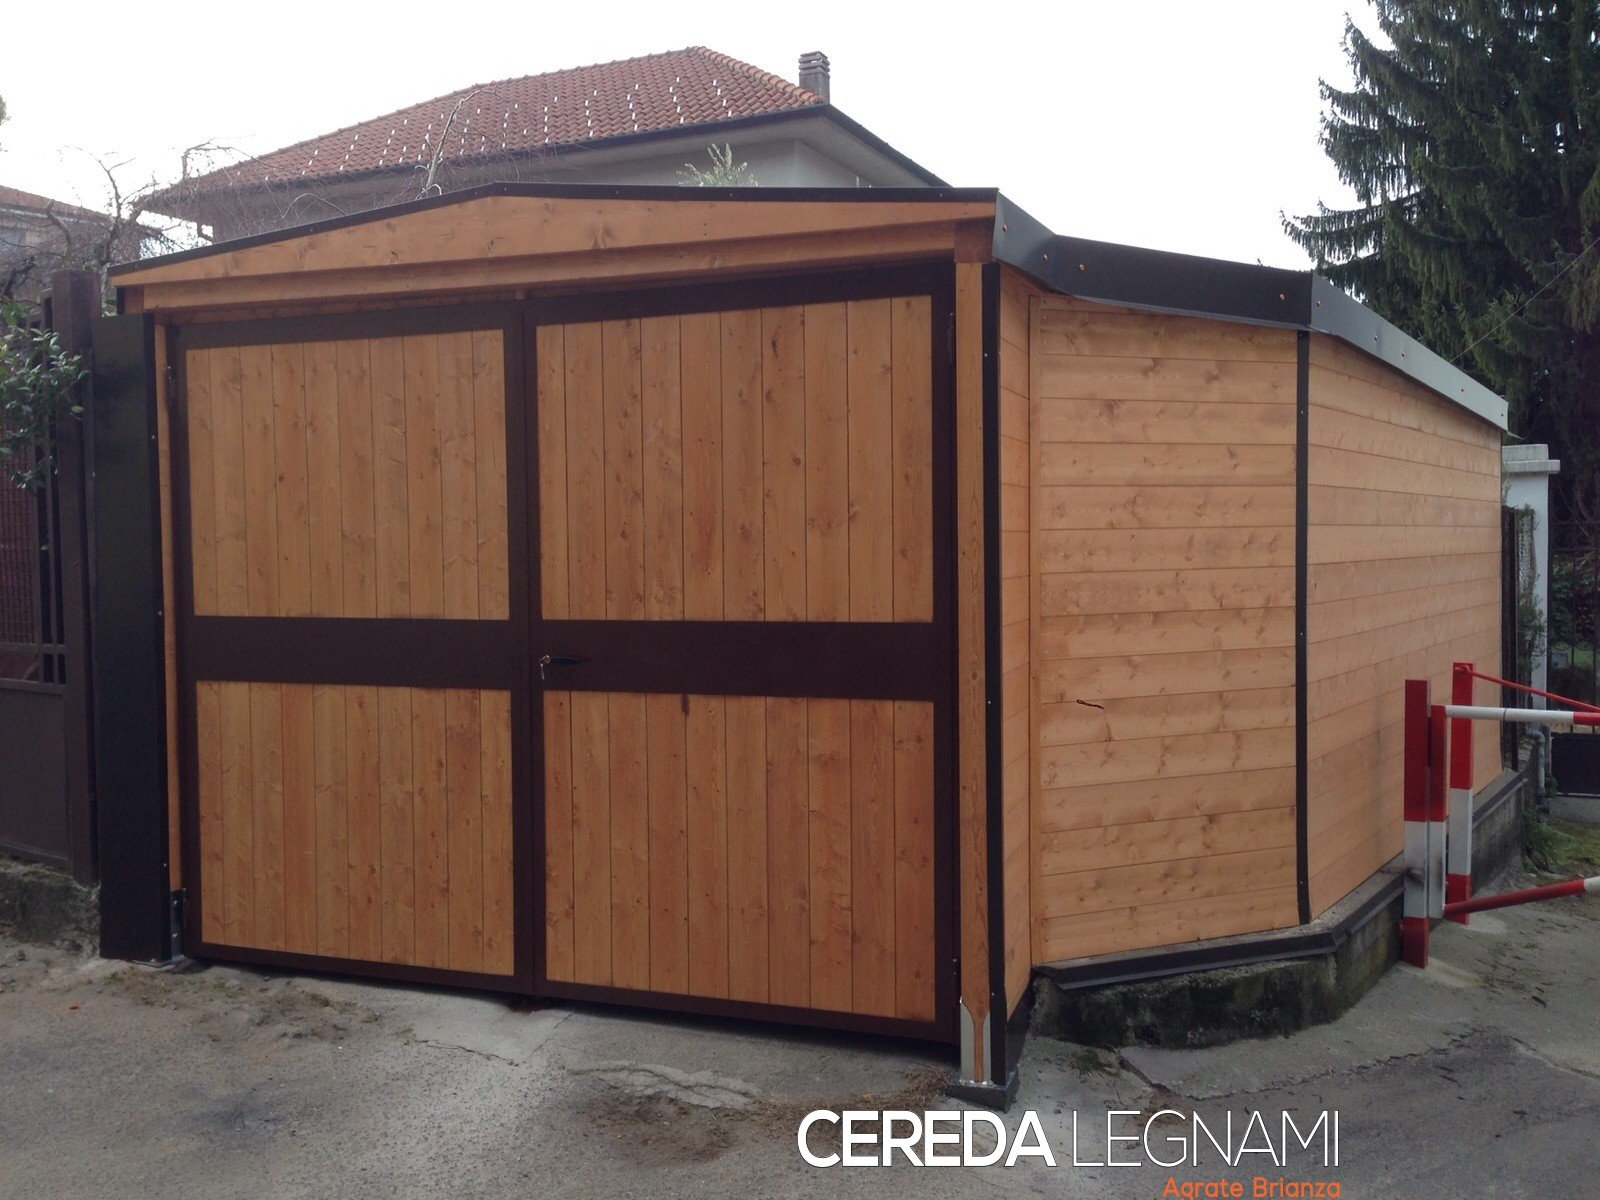 Carport legno lamellare cereda legnami agrate brianza for Due box auto